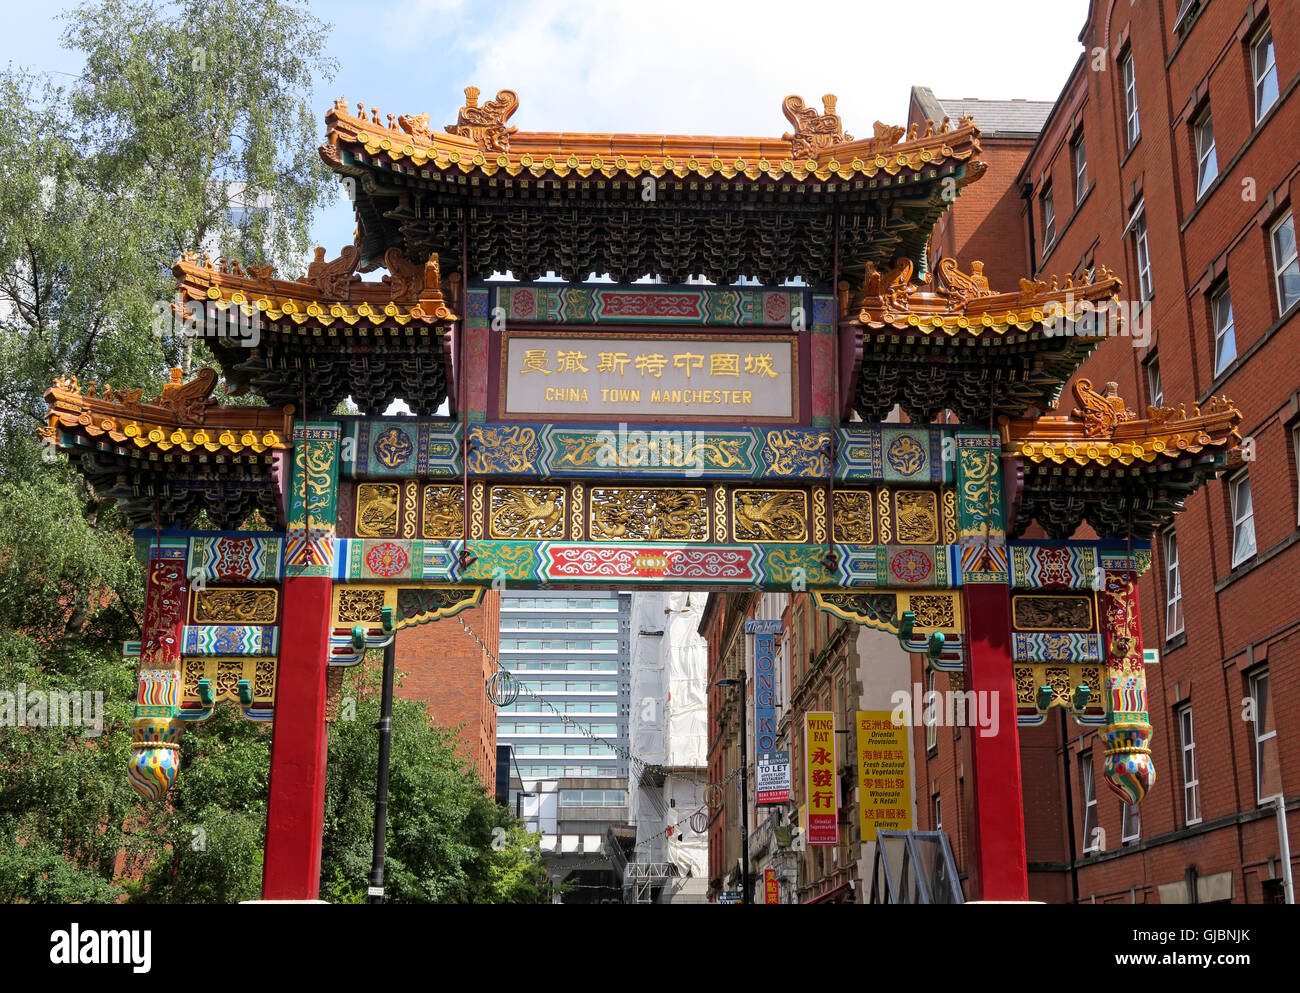 Archway ( paifang ), Manchester Chinatown,Faulkner Street, City Centre, Manchester, North West England, UK - Stock Image